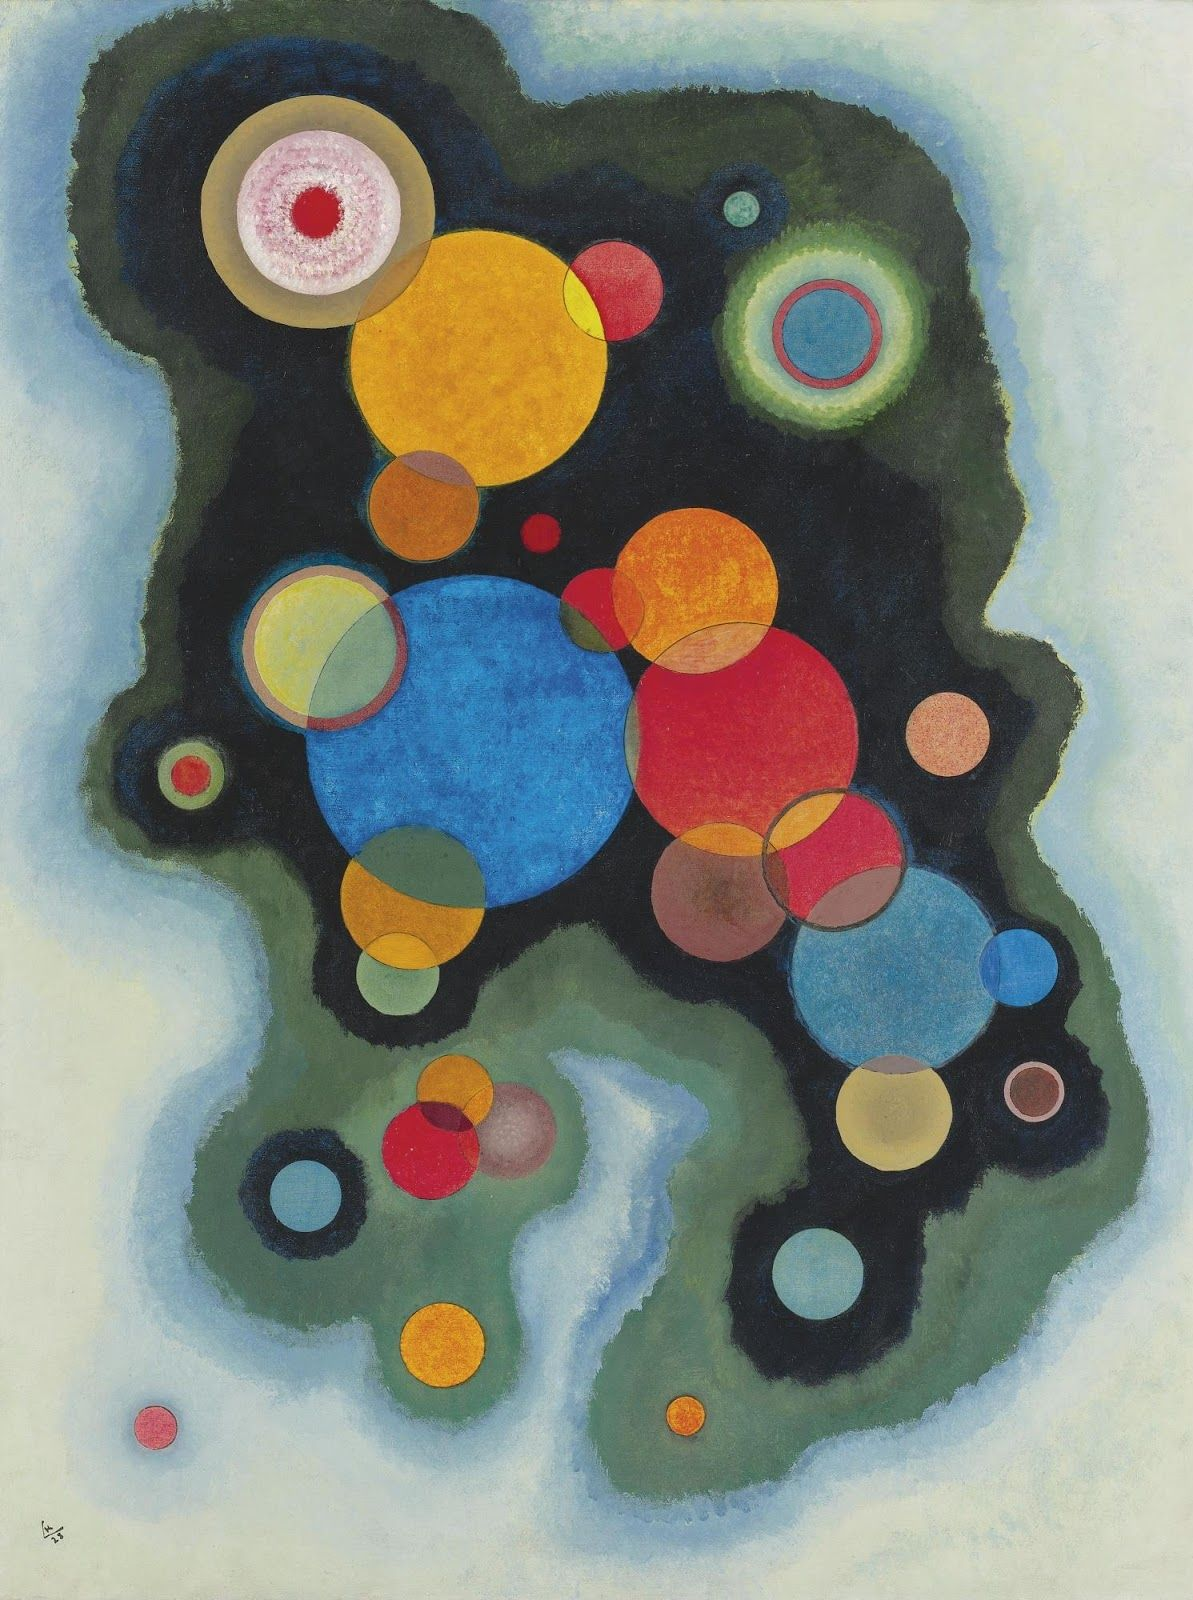 The creator of the first modern abstract paintings, Wassily Kandinsky Василий Кандинский was an influential Russian painter and art theorist.